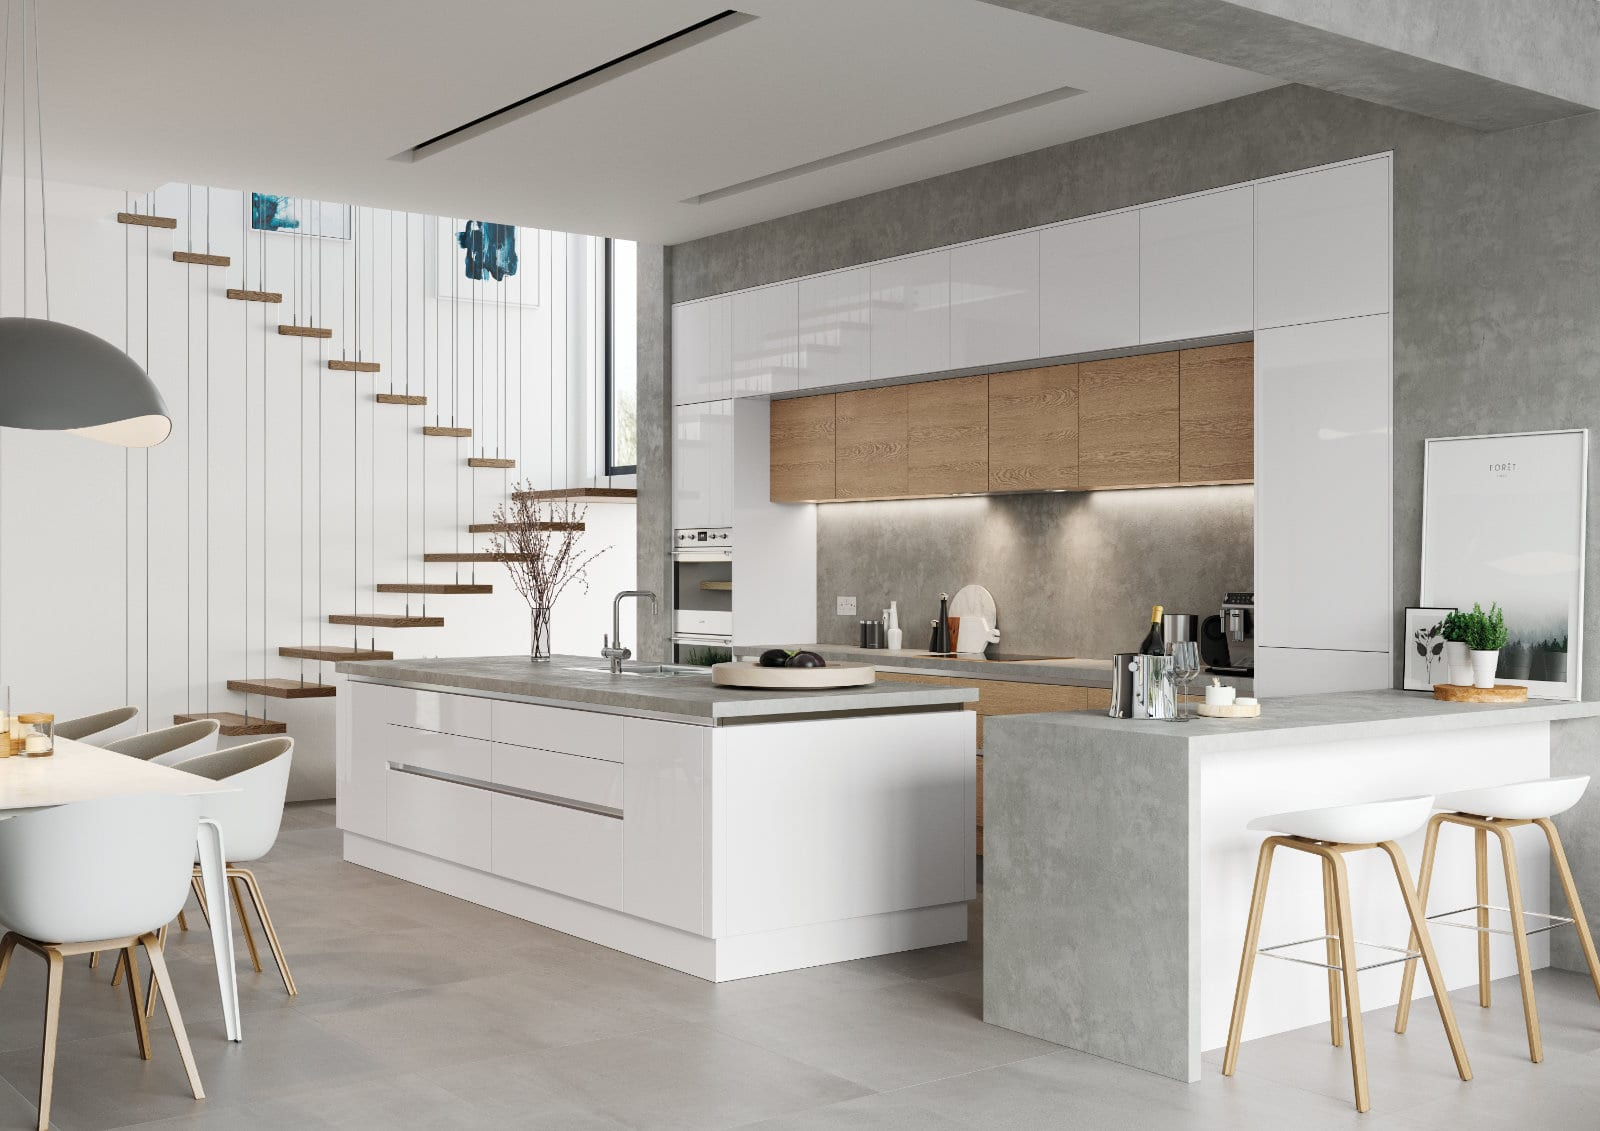 Alku White Gloss Open Plan Kitchen With Island | Right Choice Kitchens, South Wales